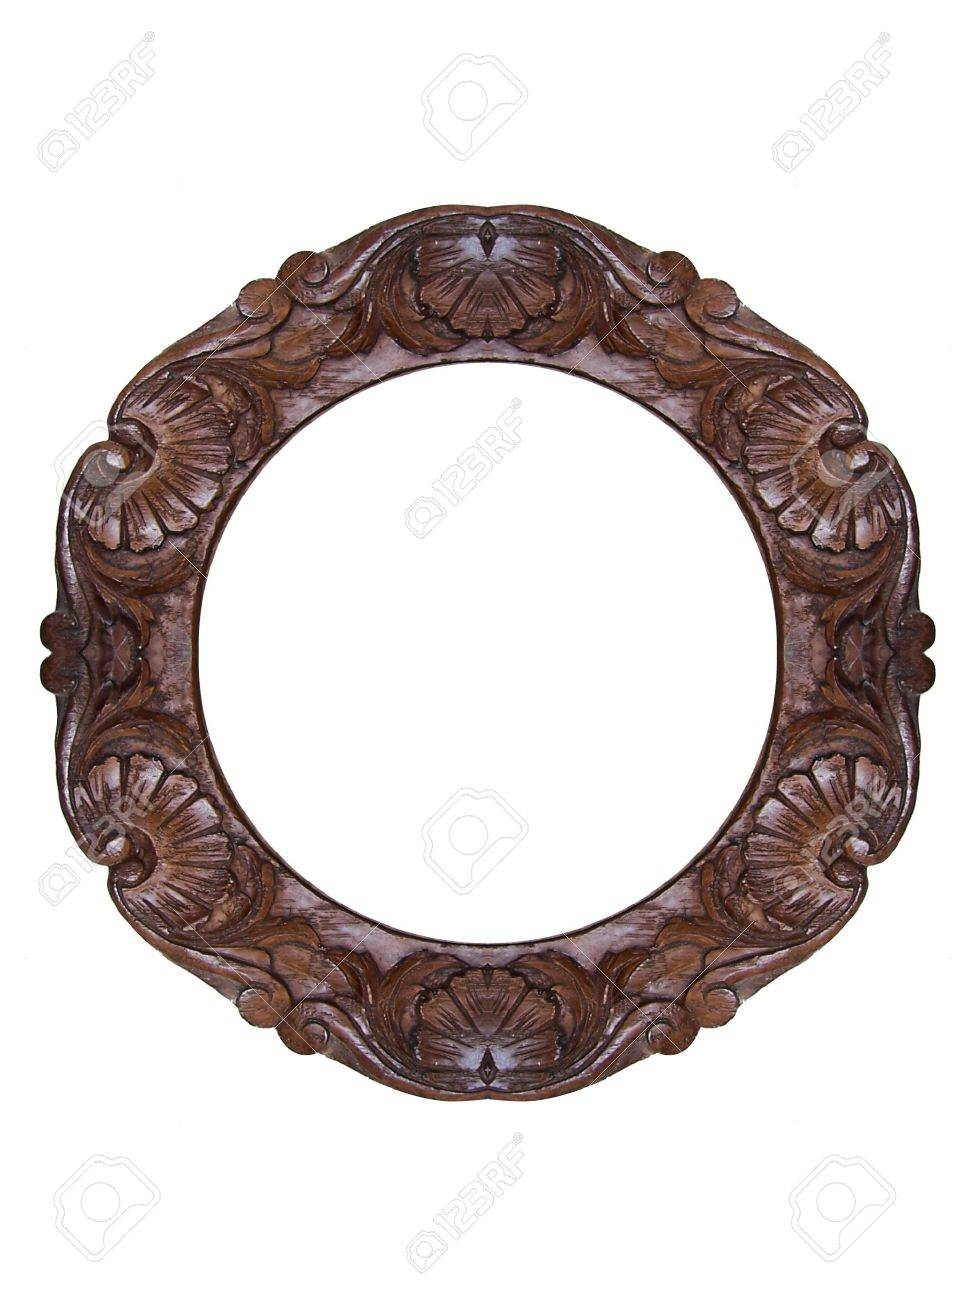 Round Wooden Carved Frame